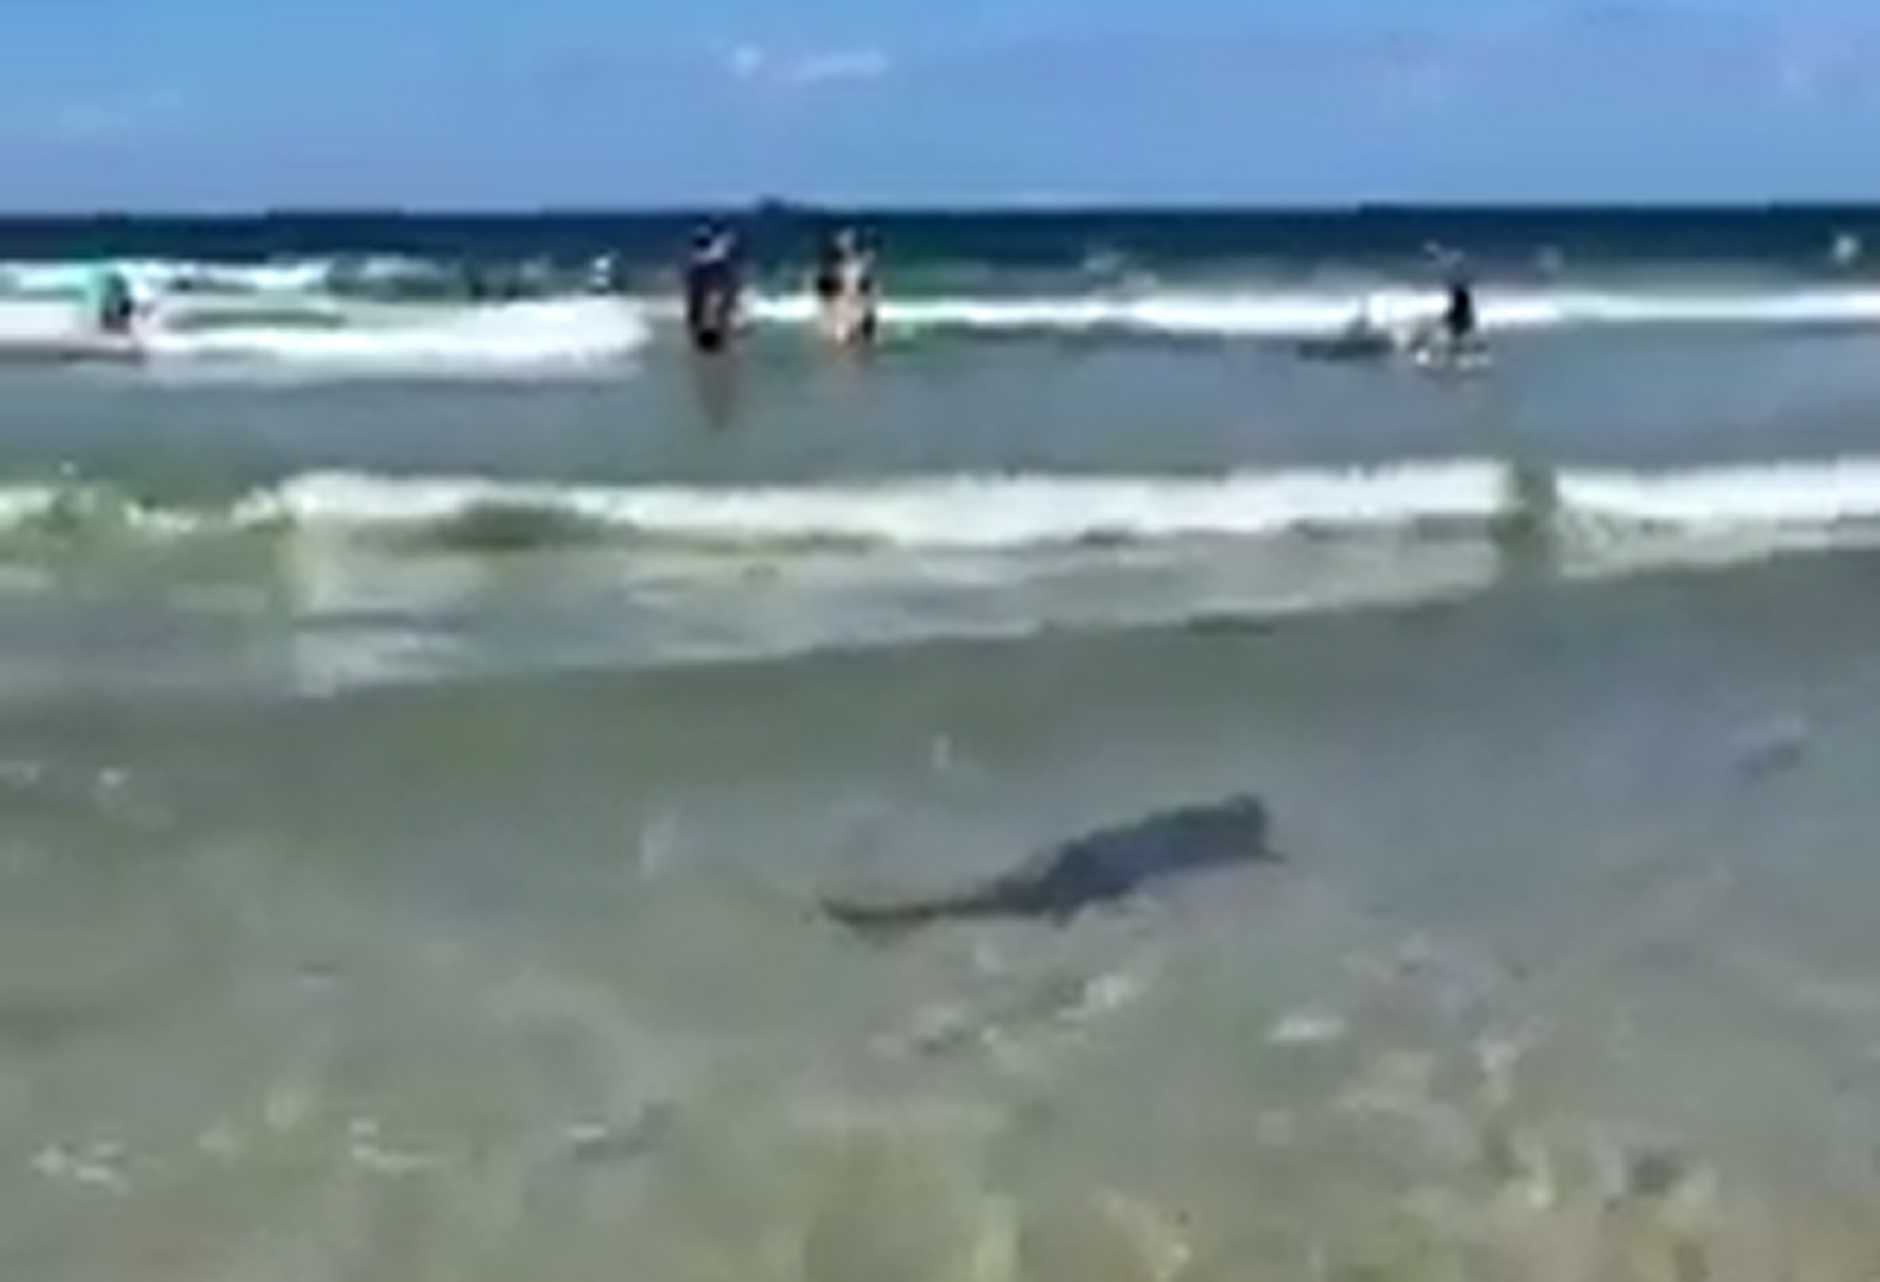 Amazing footage has emerged of a shark swimming amongst swimmers at Byron Bay's Main Beach.